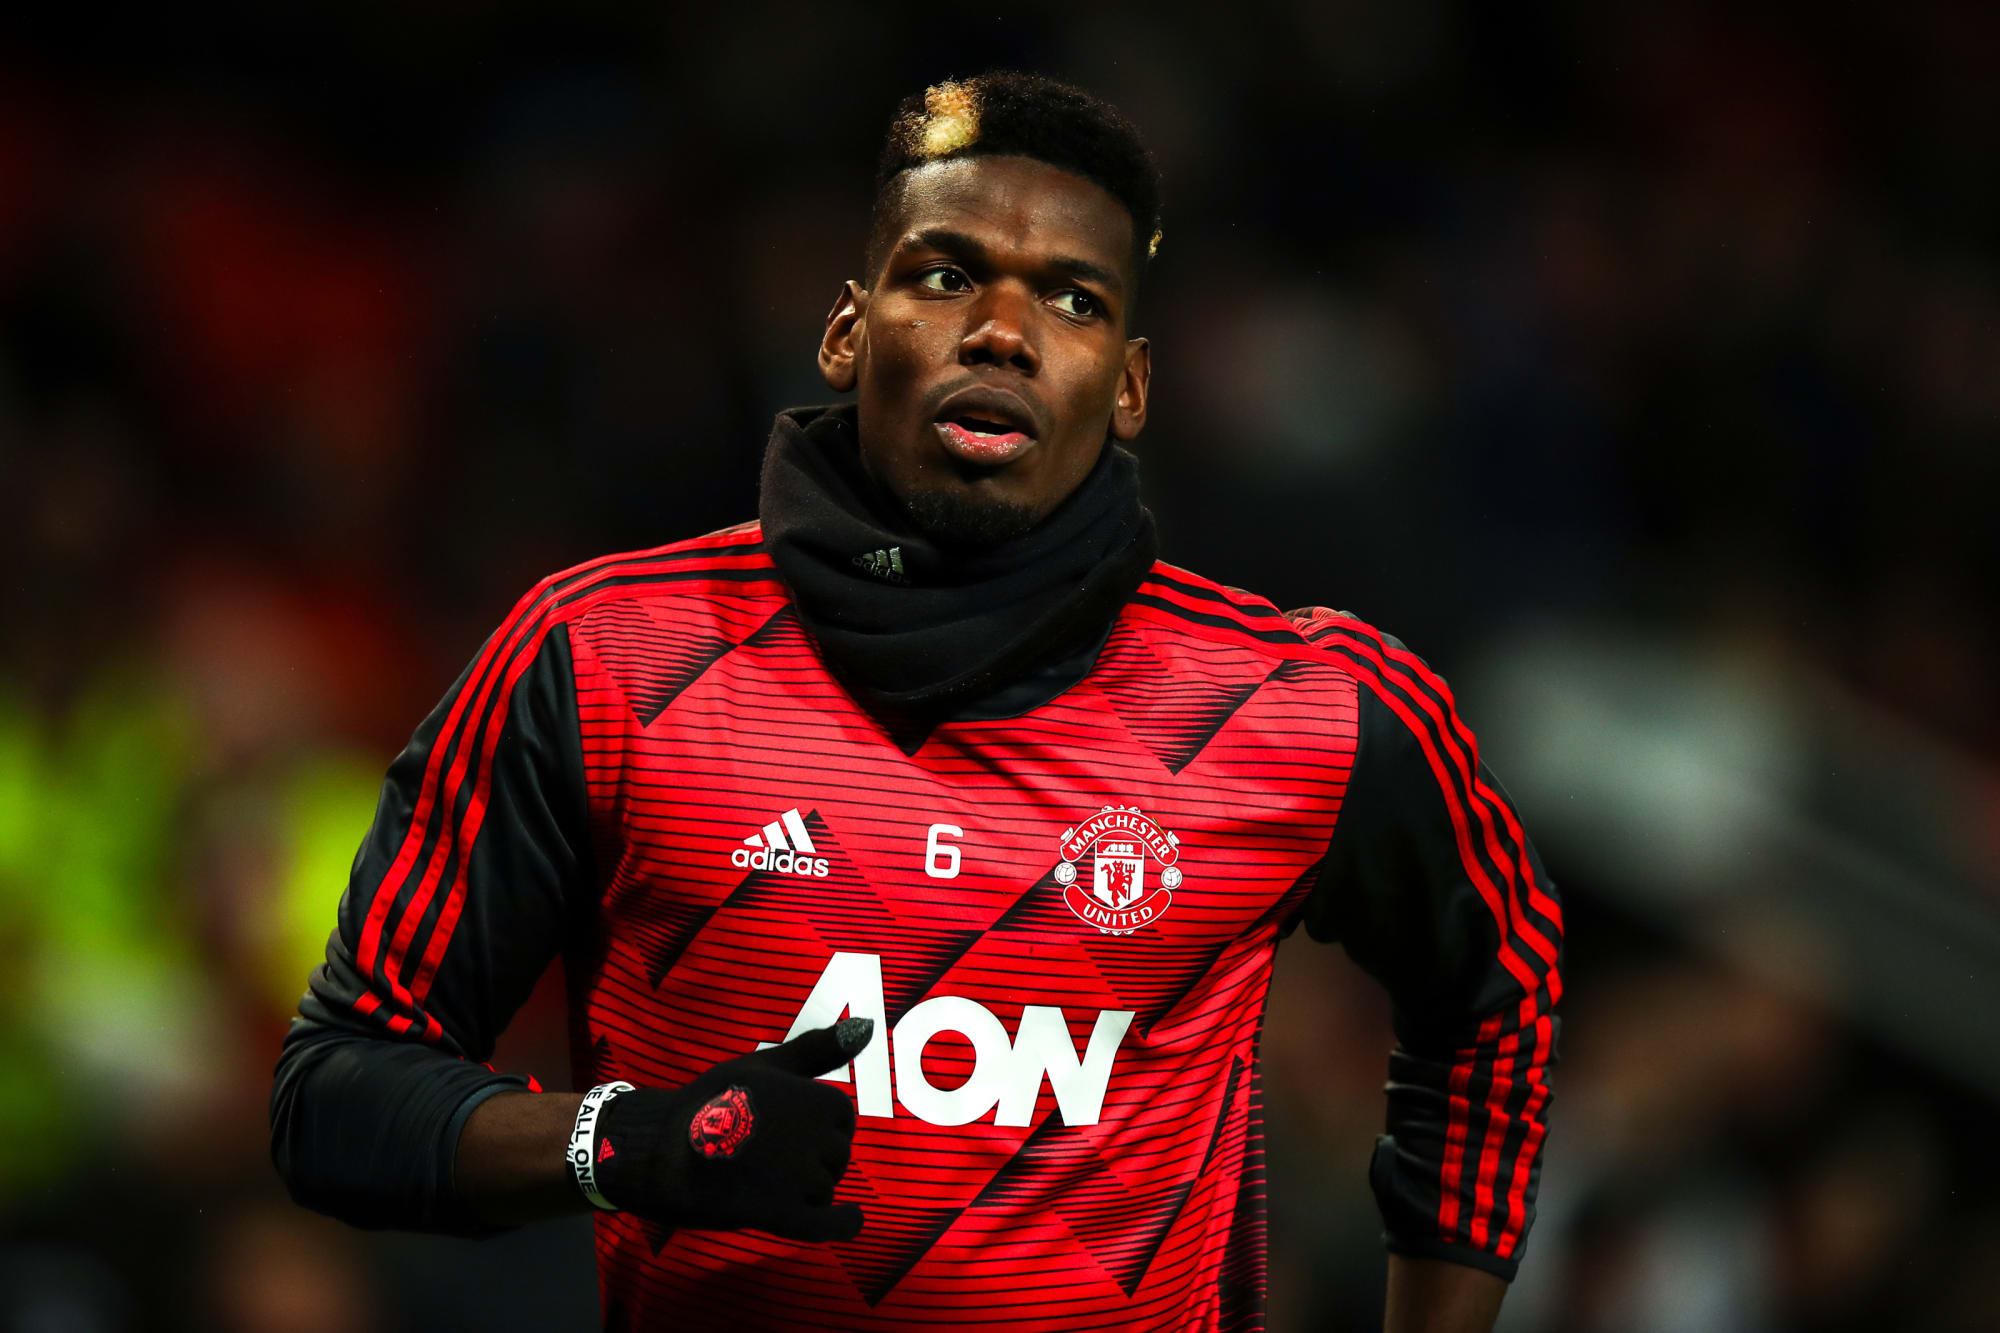 Manchester United 'scouting' potential Paul Pogba replacement thumbnail